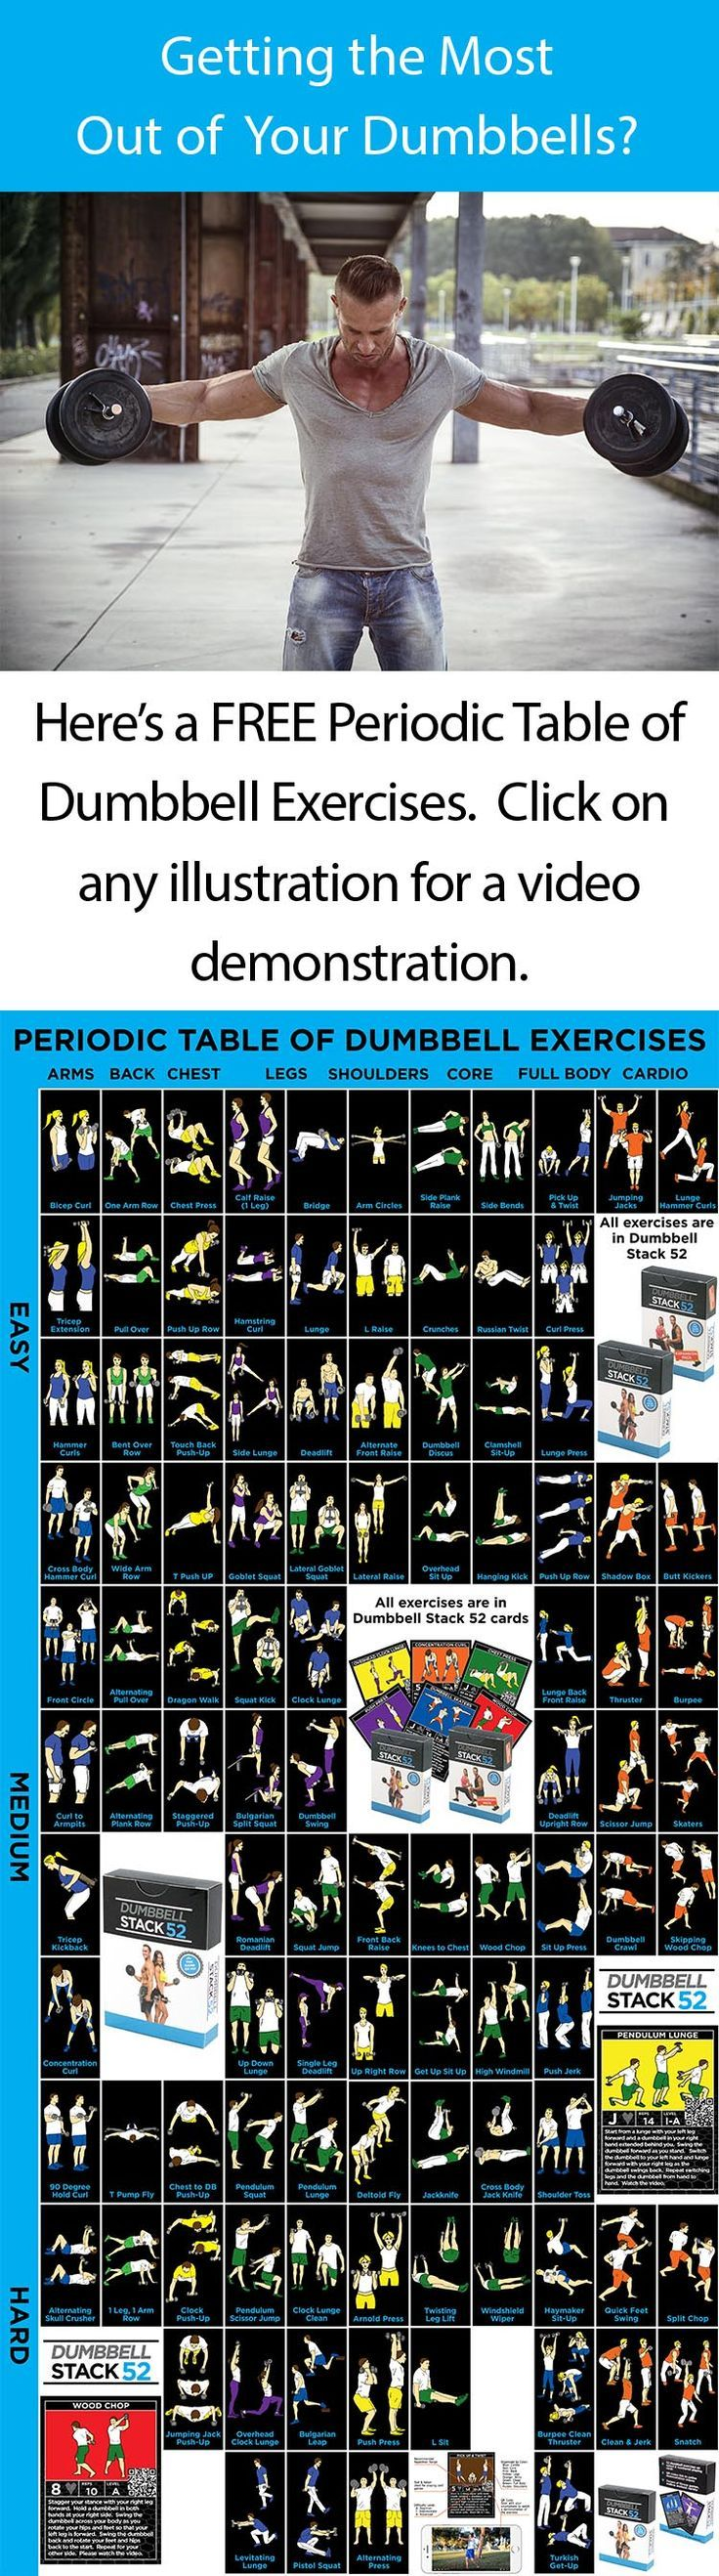 Periodic Table of Dumbbell Exercises | Strength Stack 52 #dumbbellexercises